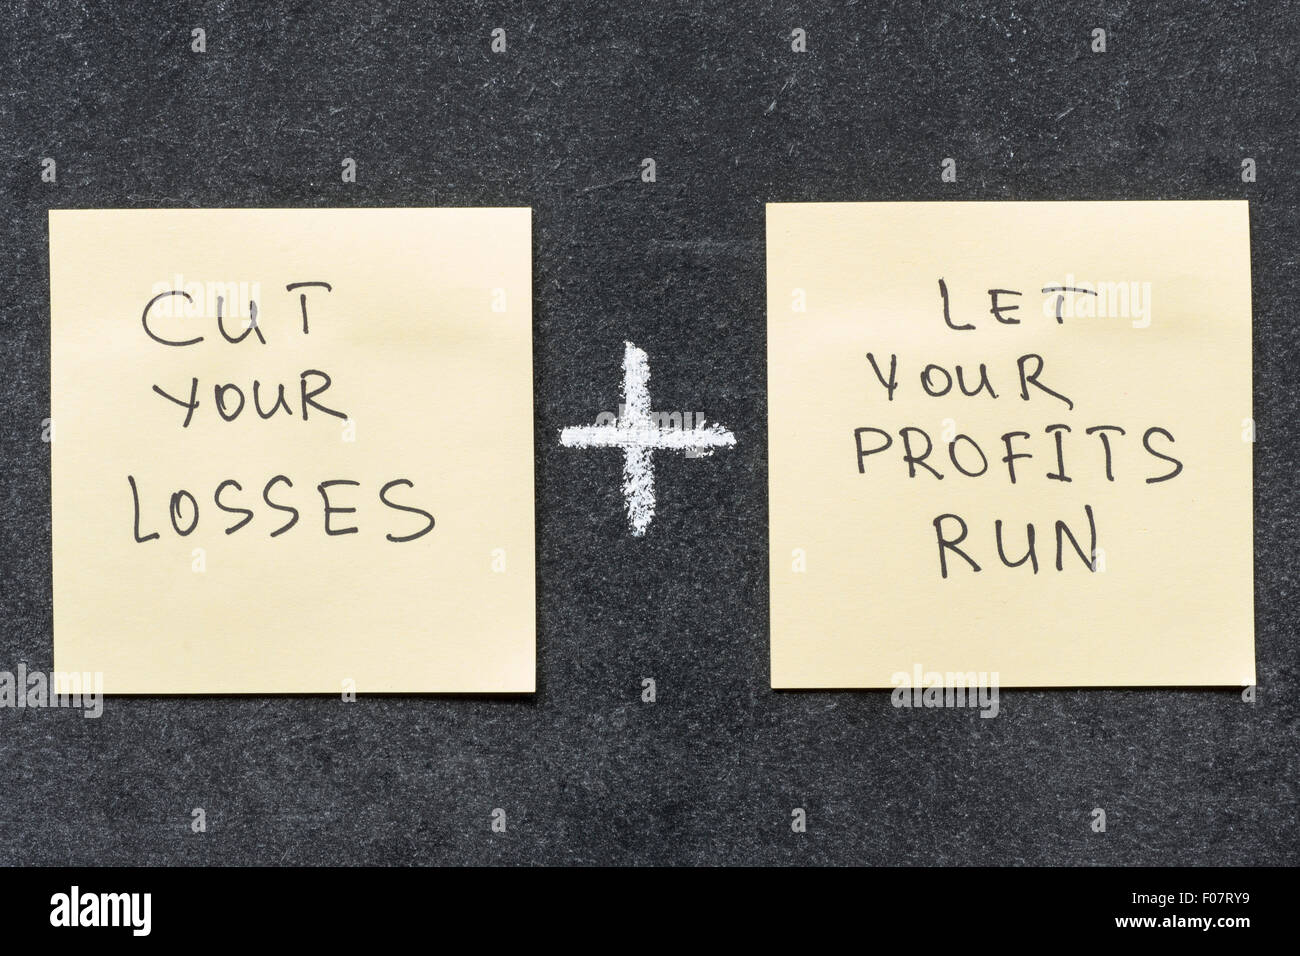 cut your losses and let your profits run proverb interpretation handwritten on sticker notes - Stock Image